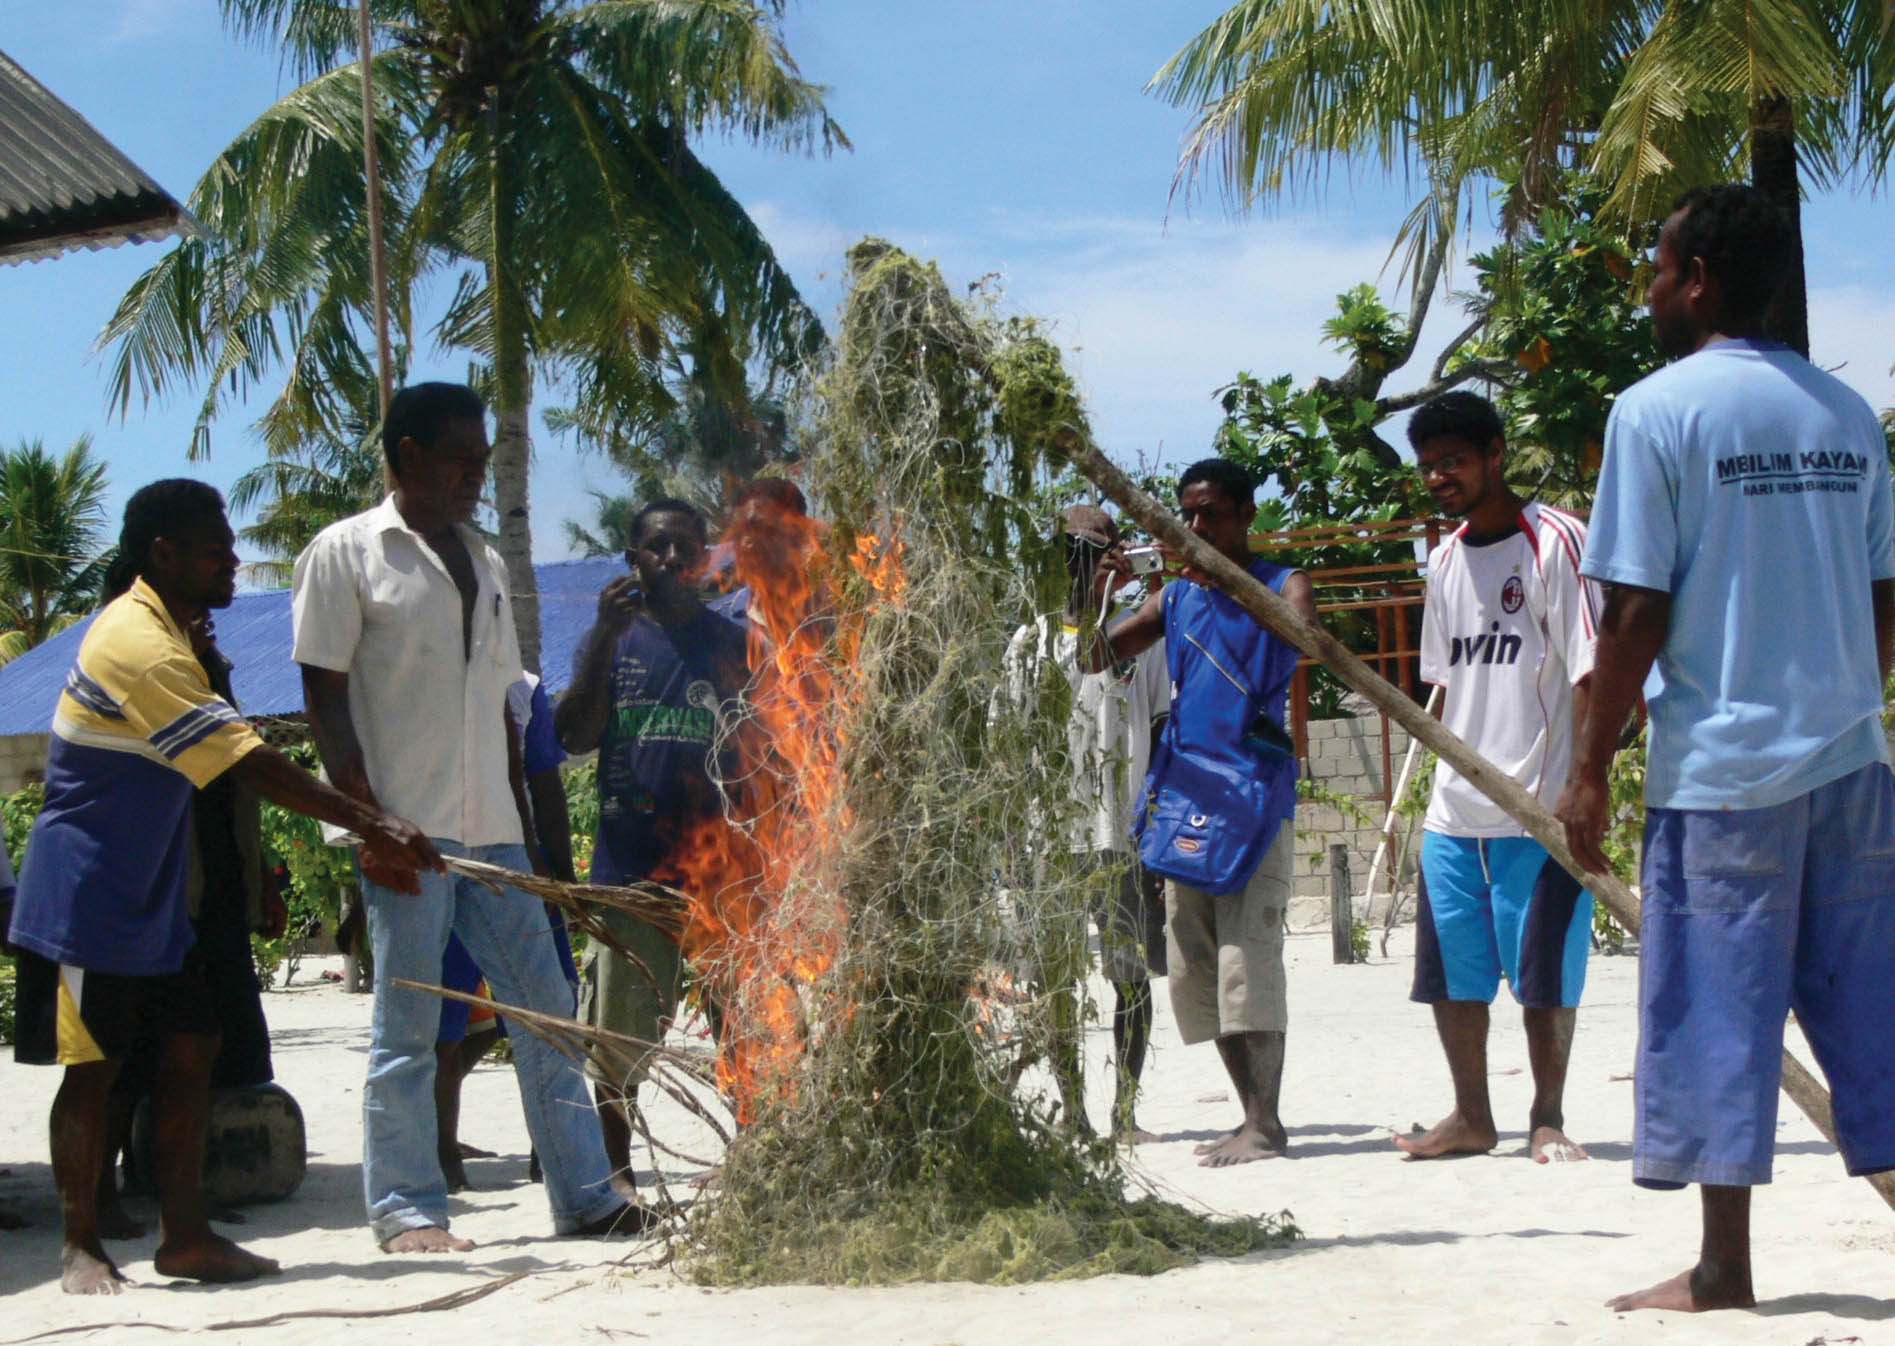 In a symbolic ceremony to express their new commitment to sea turtle conservation, the Ayau turtle hunters burned a net used to capture the turtles. © Conservation International-Indonesia